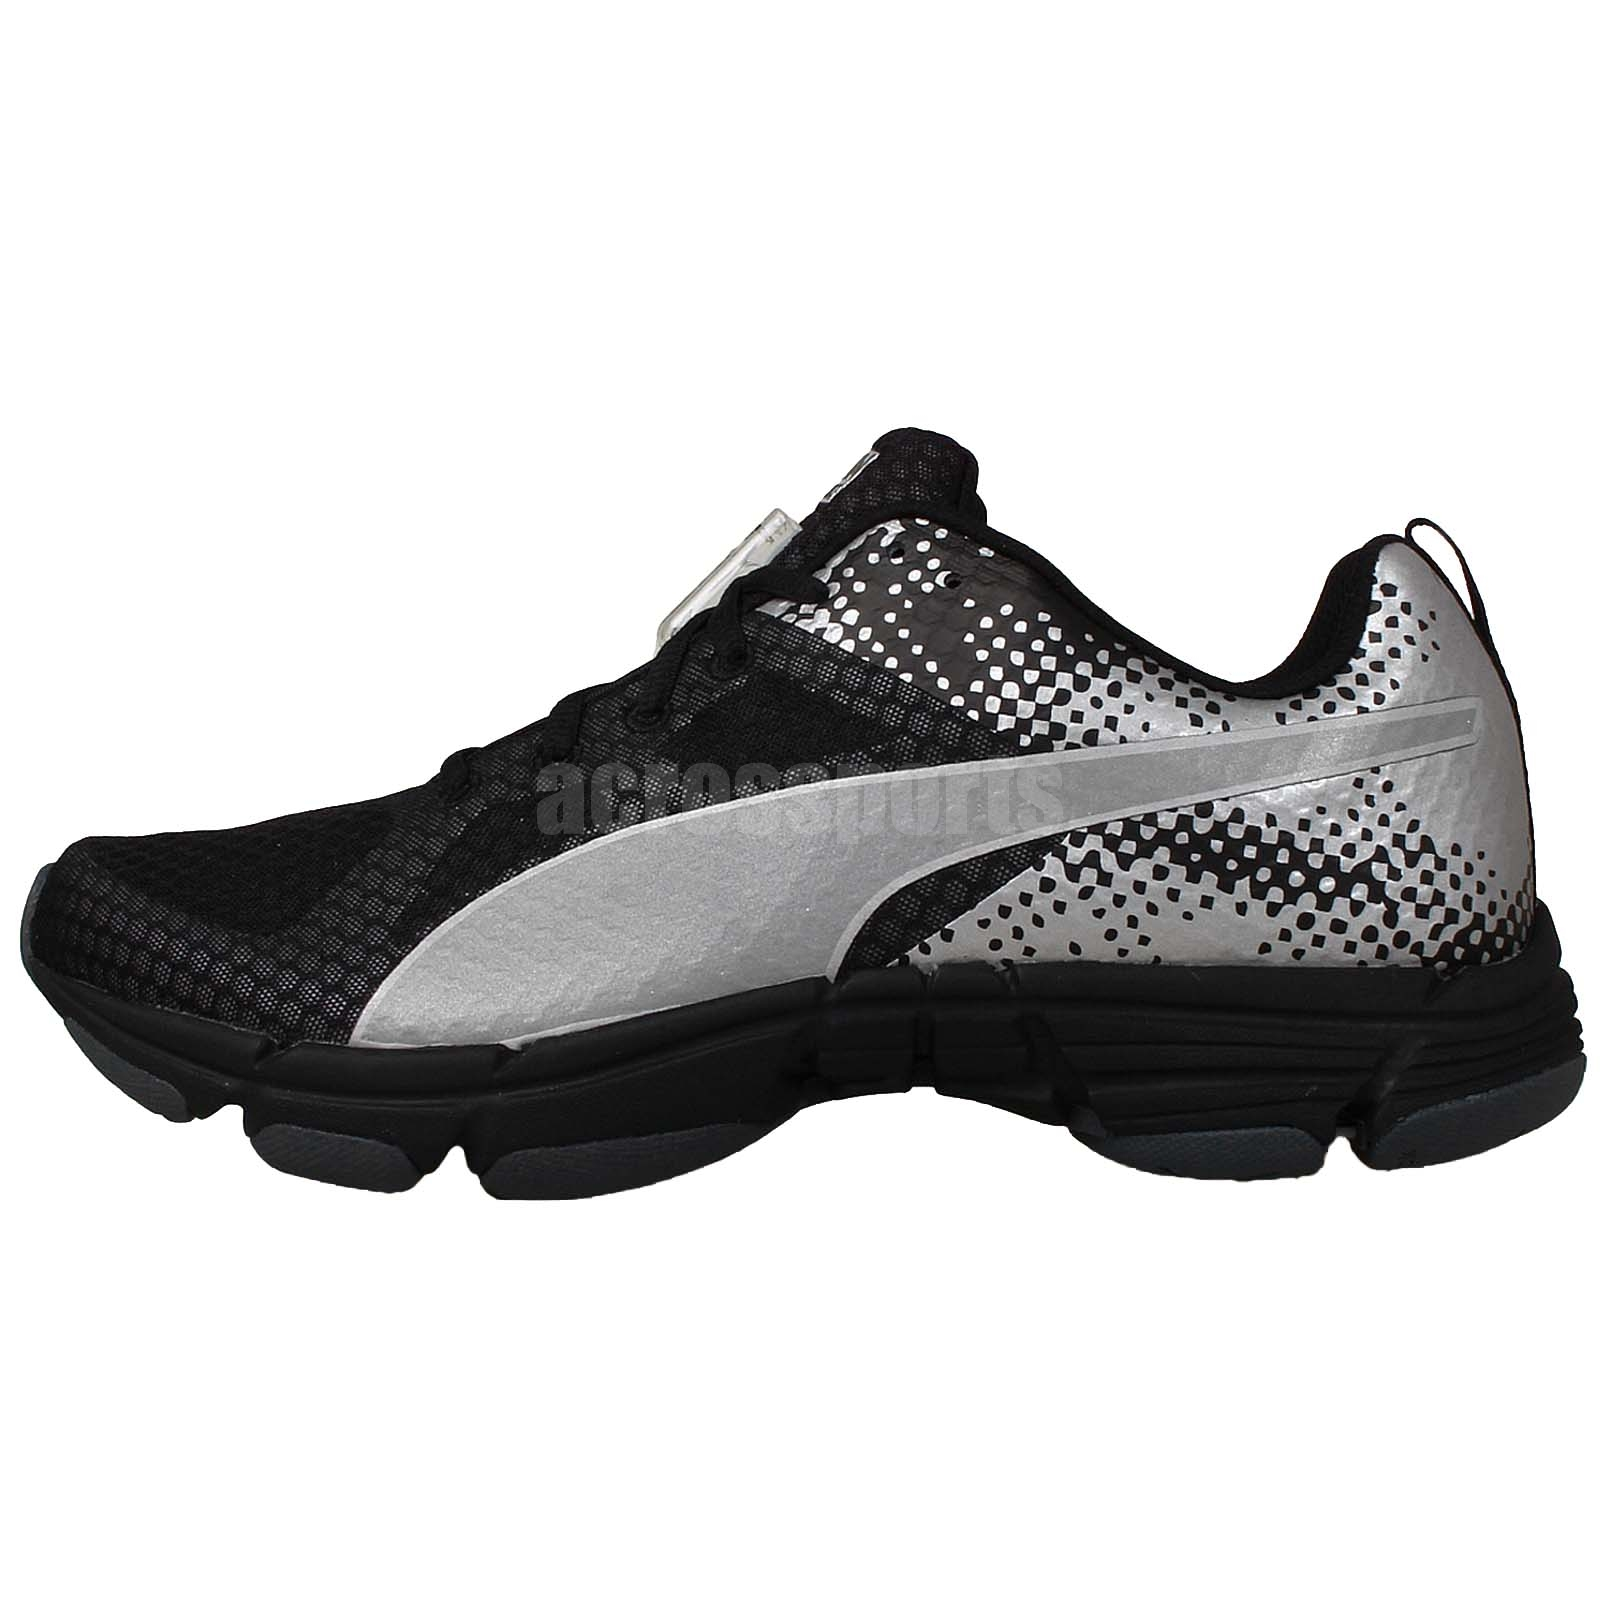 Puma Mobium Ride NC Powered Night Cat Black SIlver Unisex Running Shoes  18741802 7cd38ccf746df